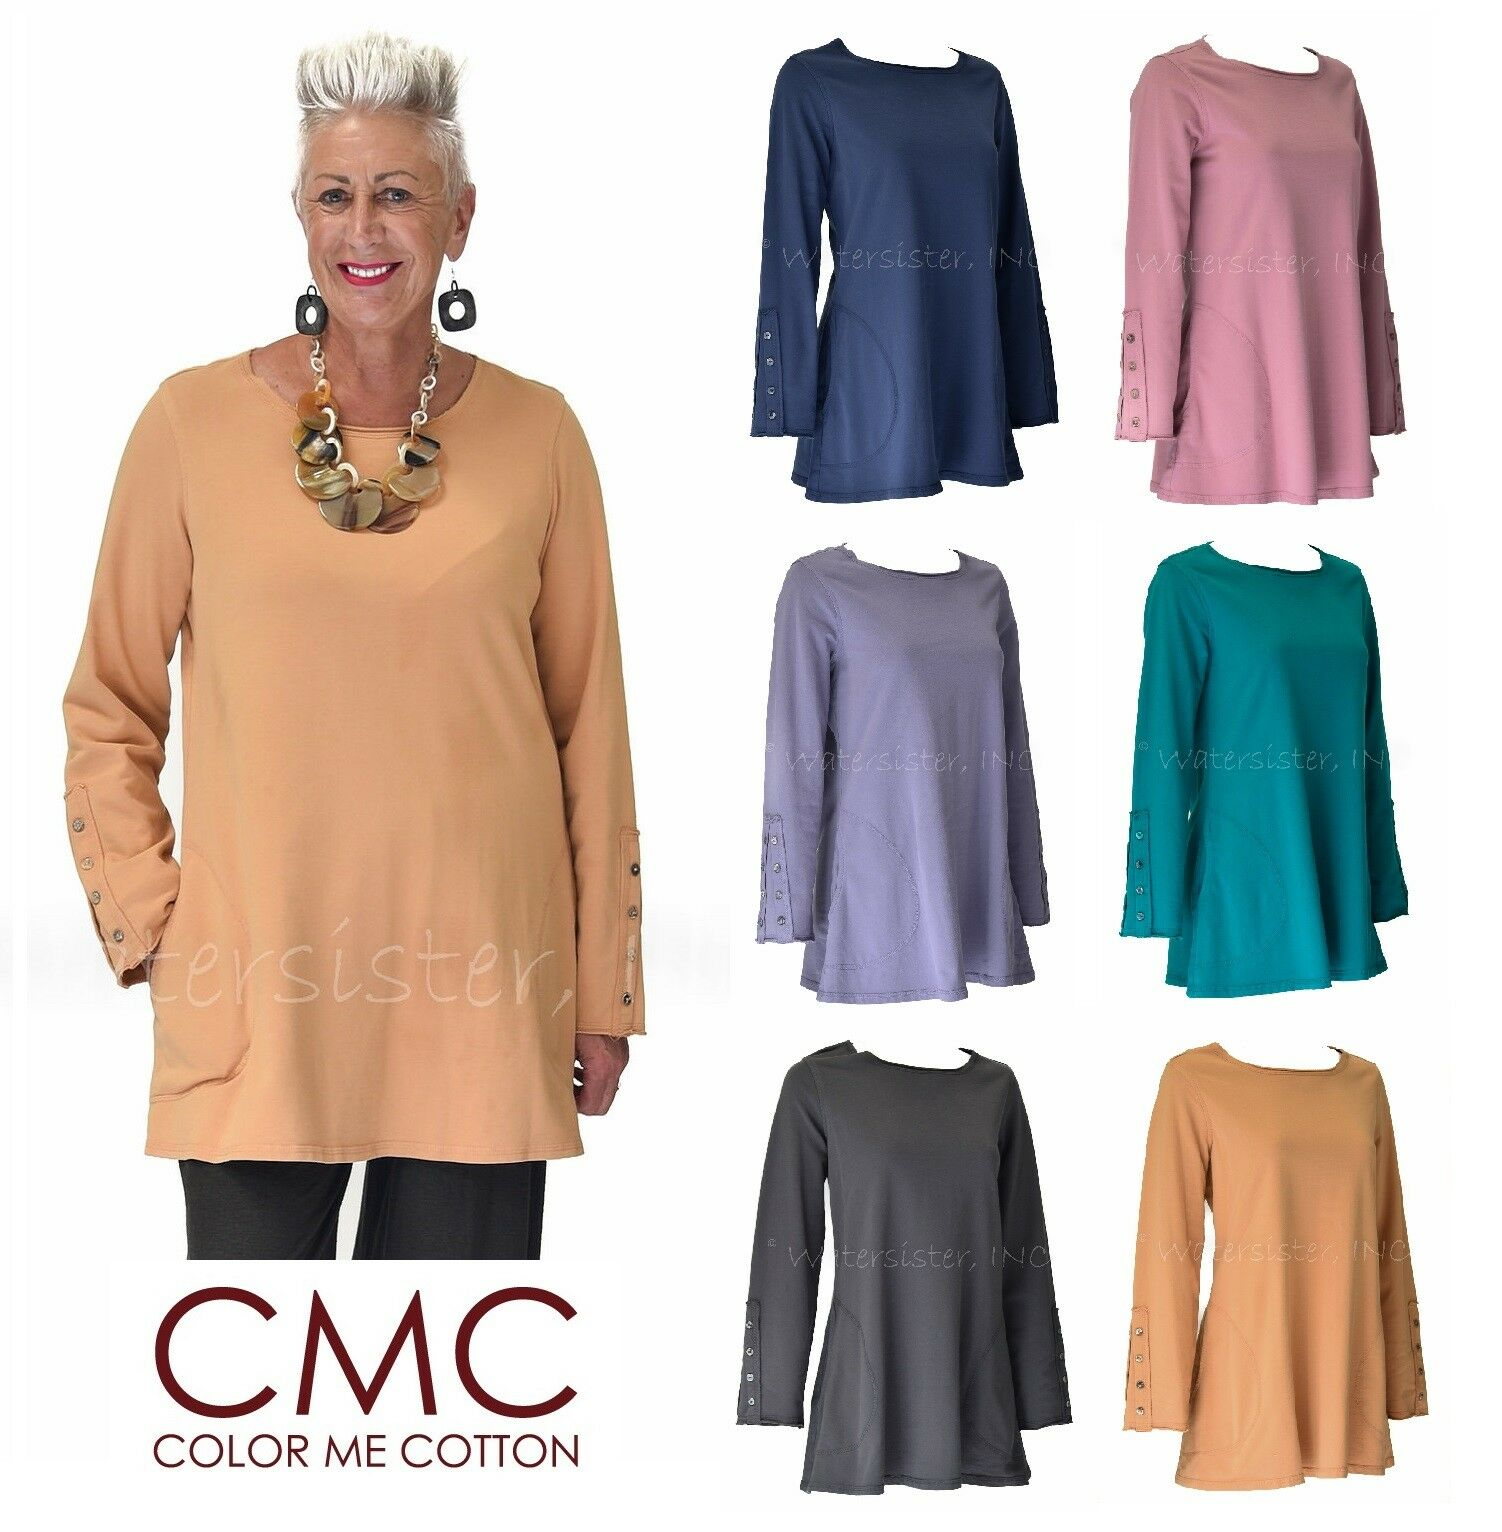 CMC by Farbe ME COTTON USA  5393 French Terry SLEEVE DETAIL TUNIC Top  2017 FALL